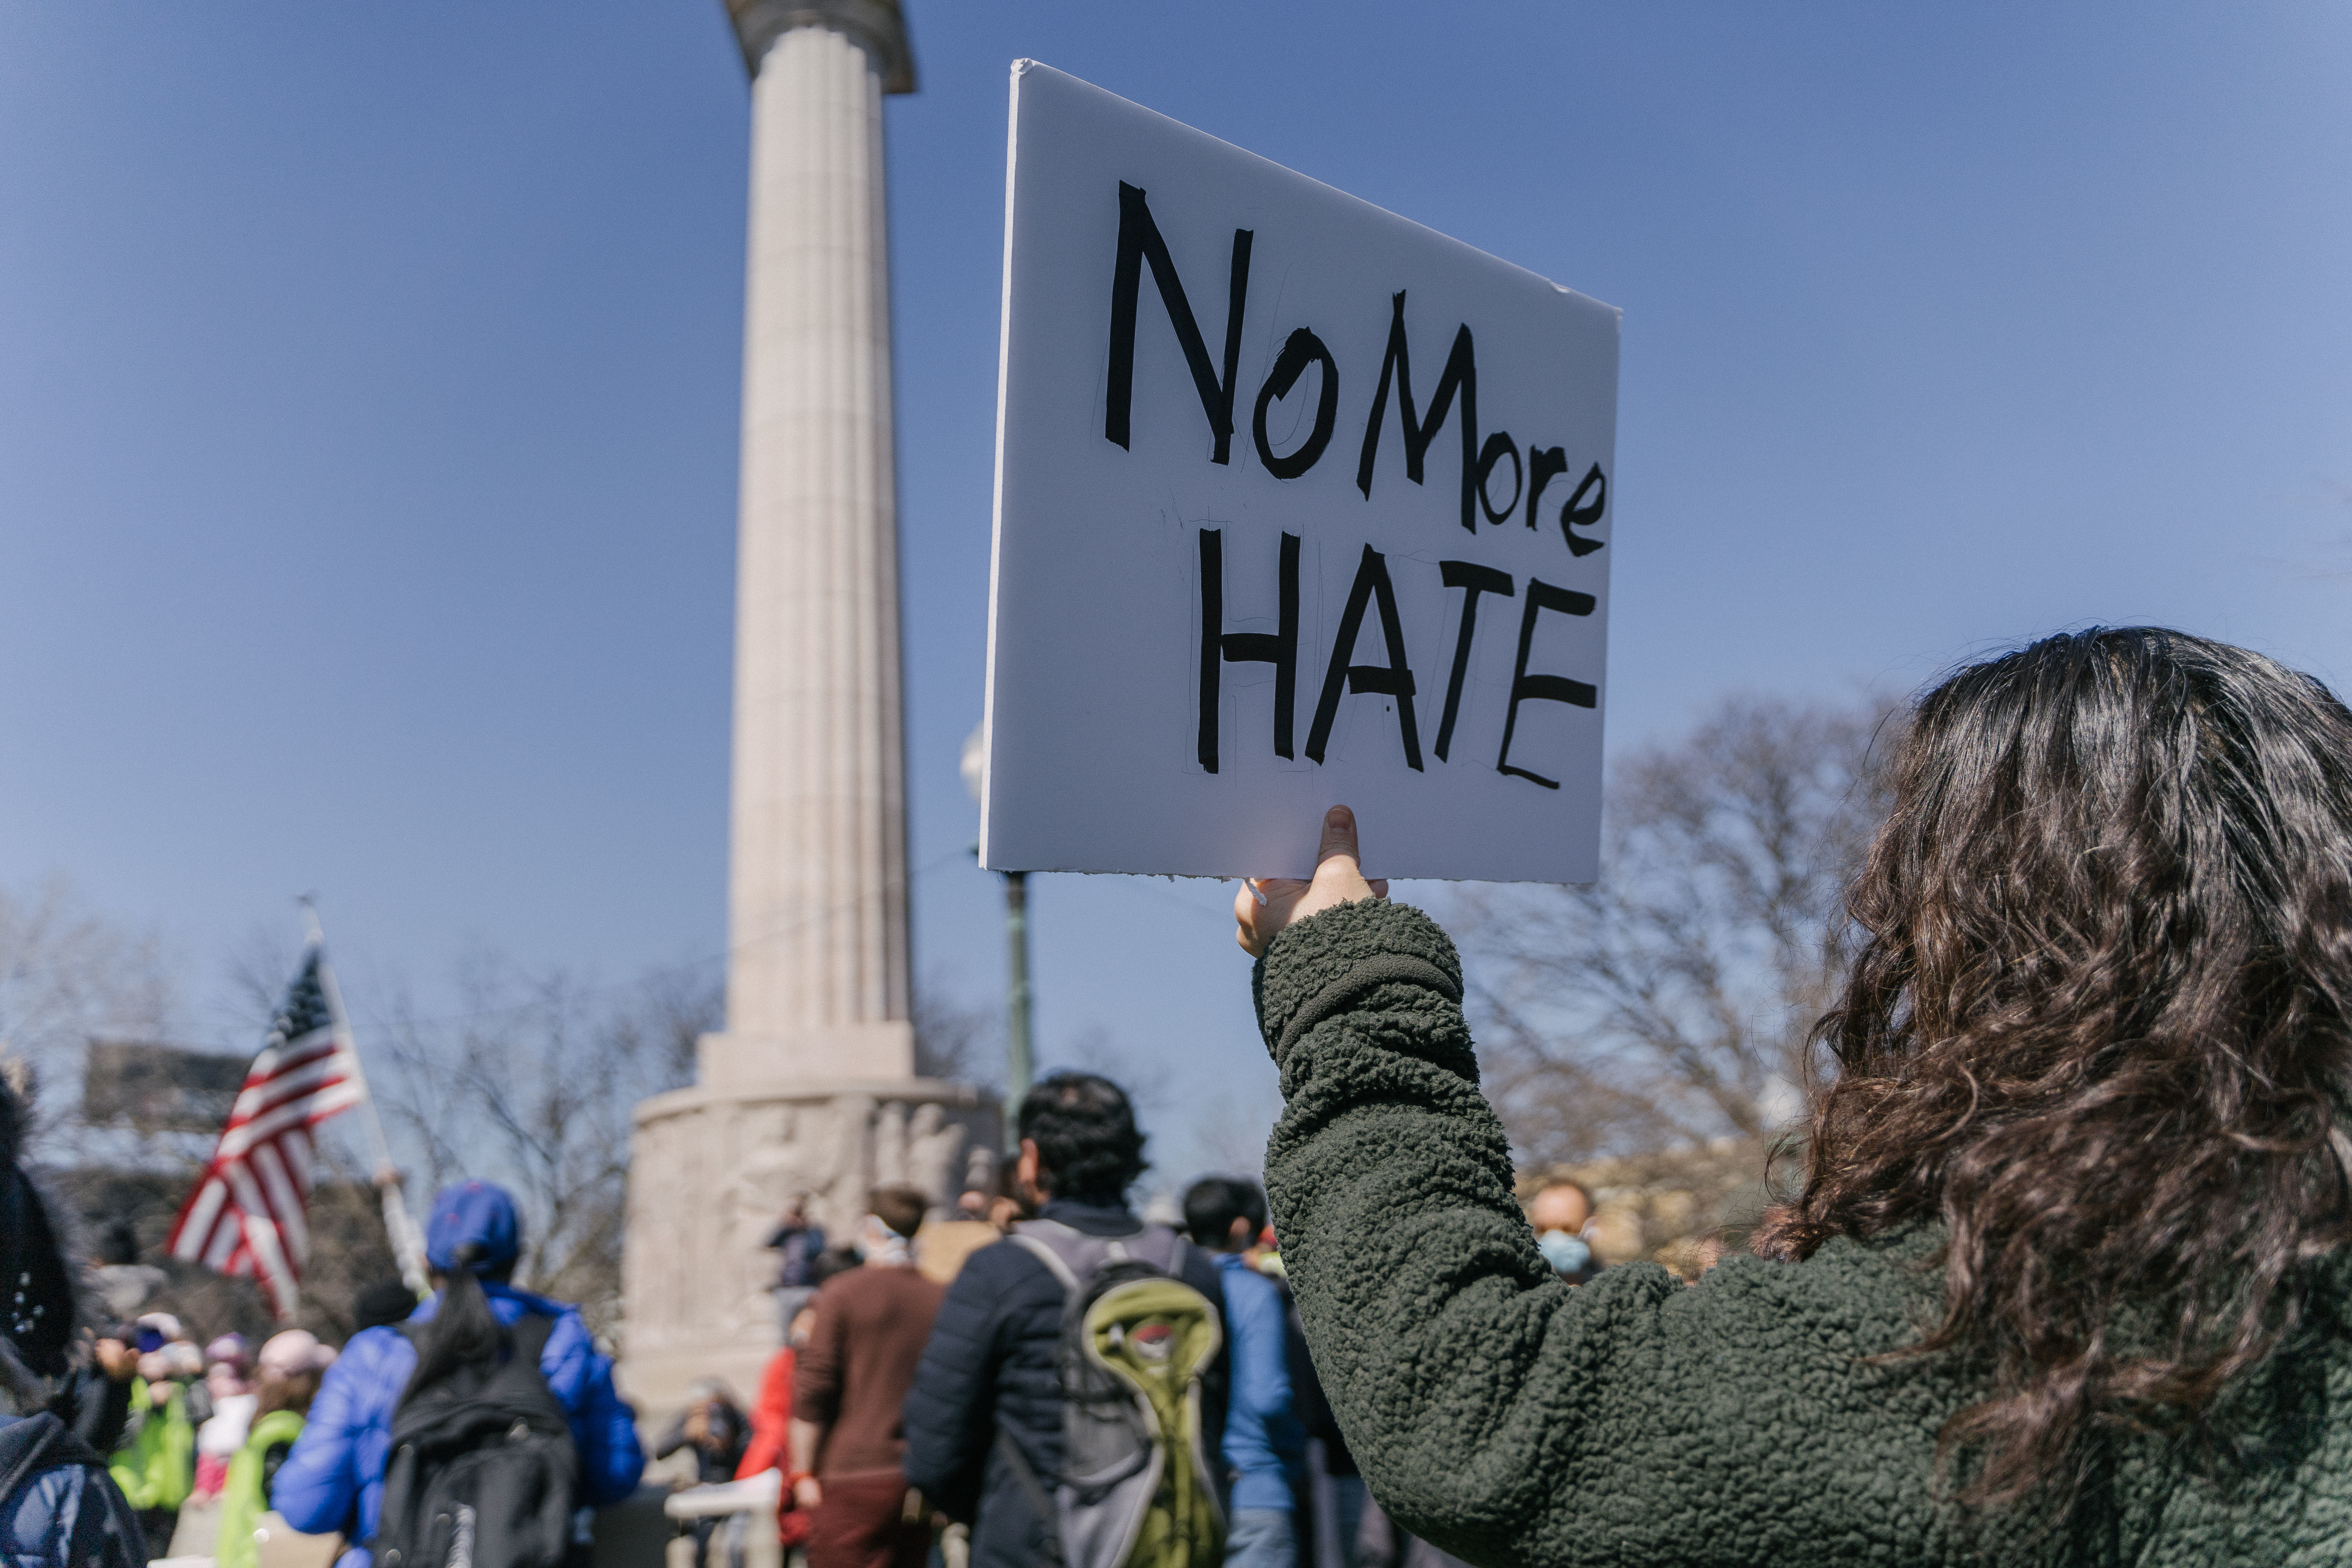 Li Liu, 48, raises a sign during a Stop Asian Hate March at the Illinois Centennial Monument in Logan Square on March 20.